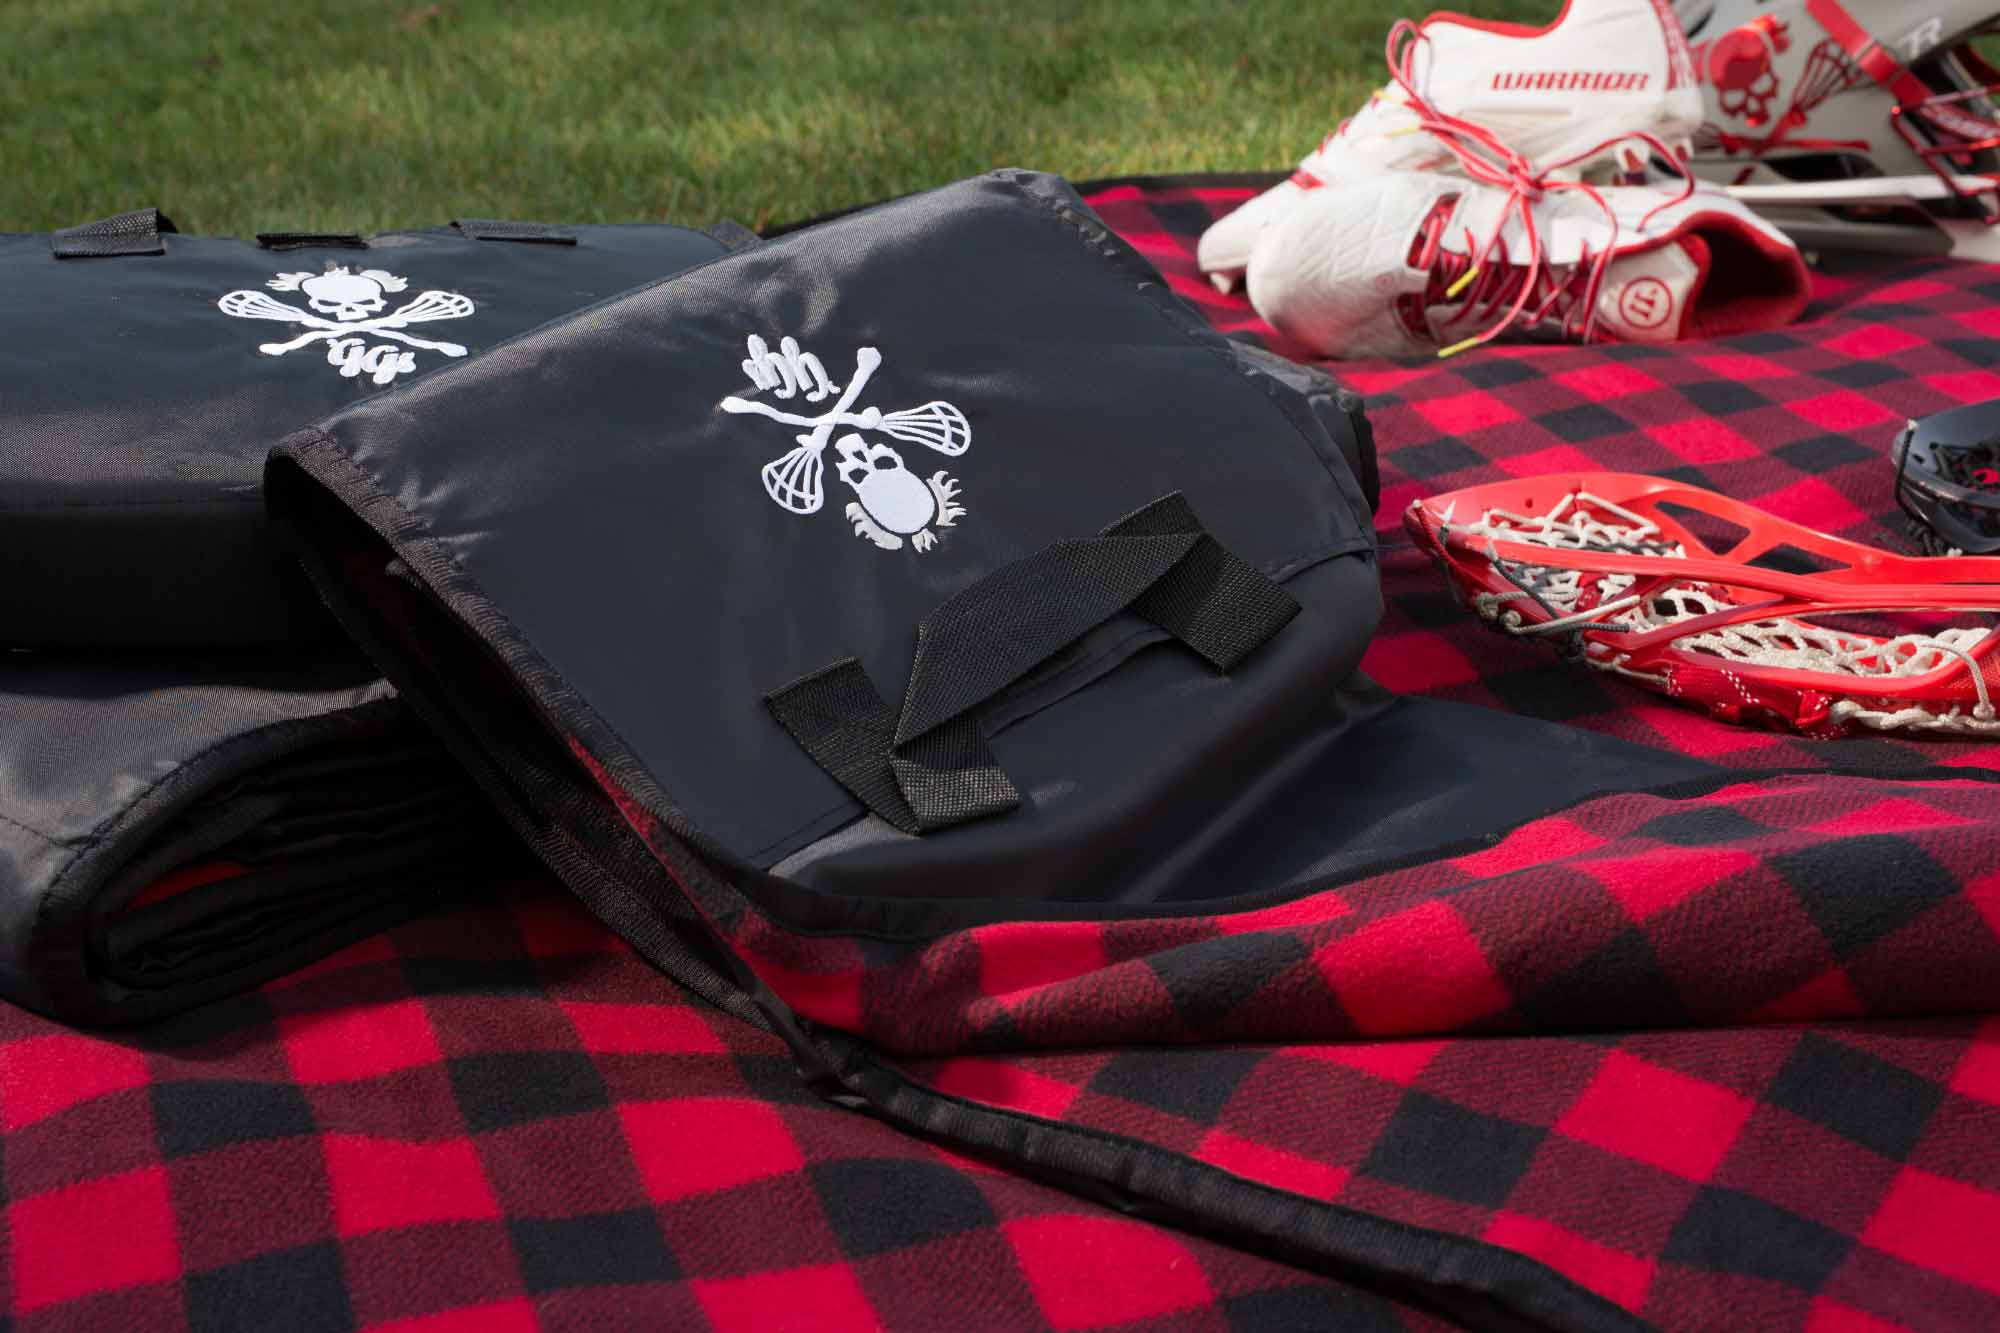 Picnic Blanket with Enbroidery